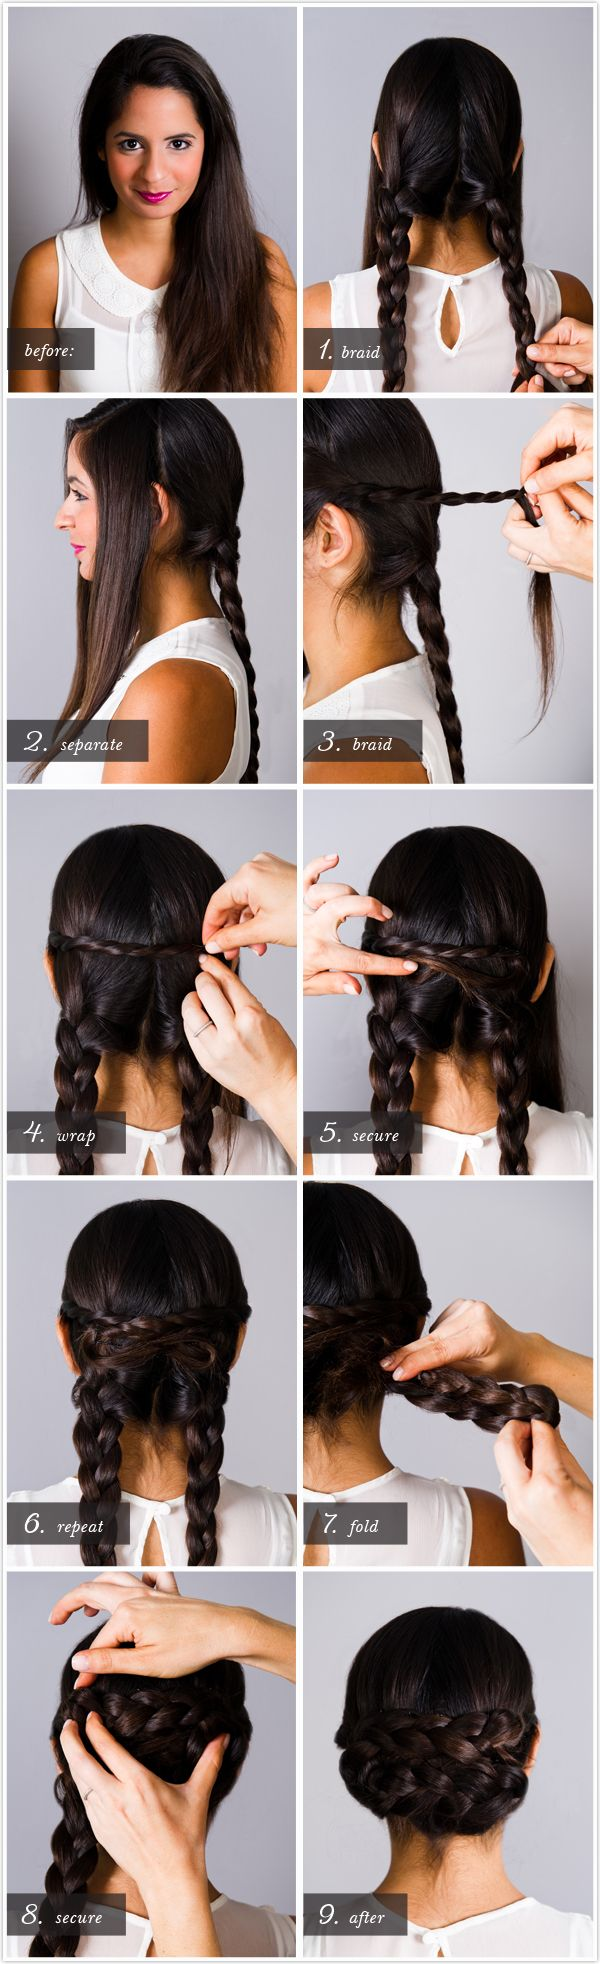 Braided Bun KATNISS REAPING DAY HAIR- PRETTY EASY BUT IF ONLY MY HAIR WAS ALITTLE LONGER